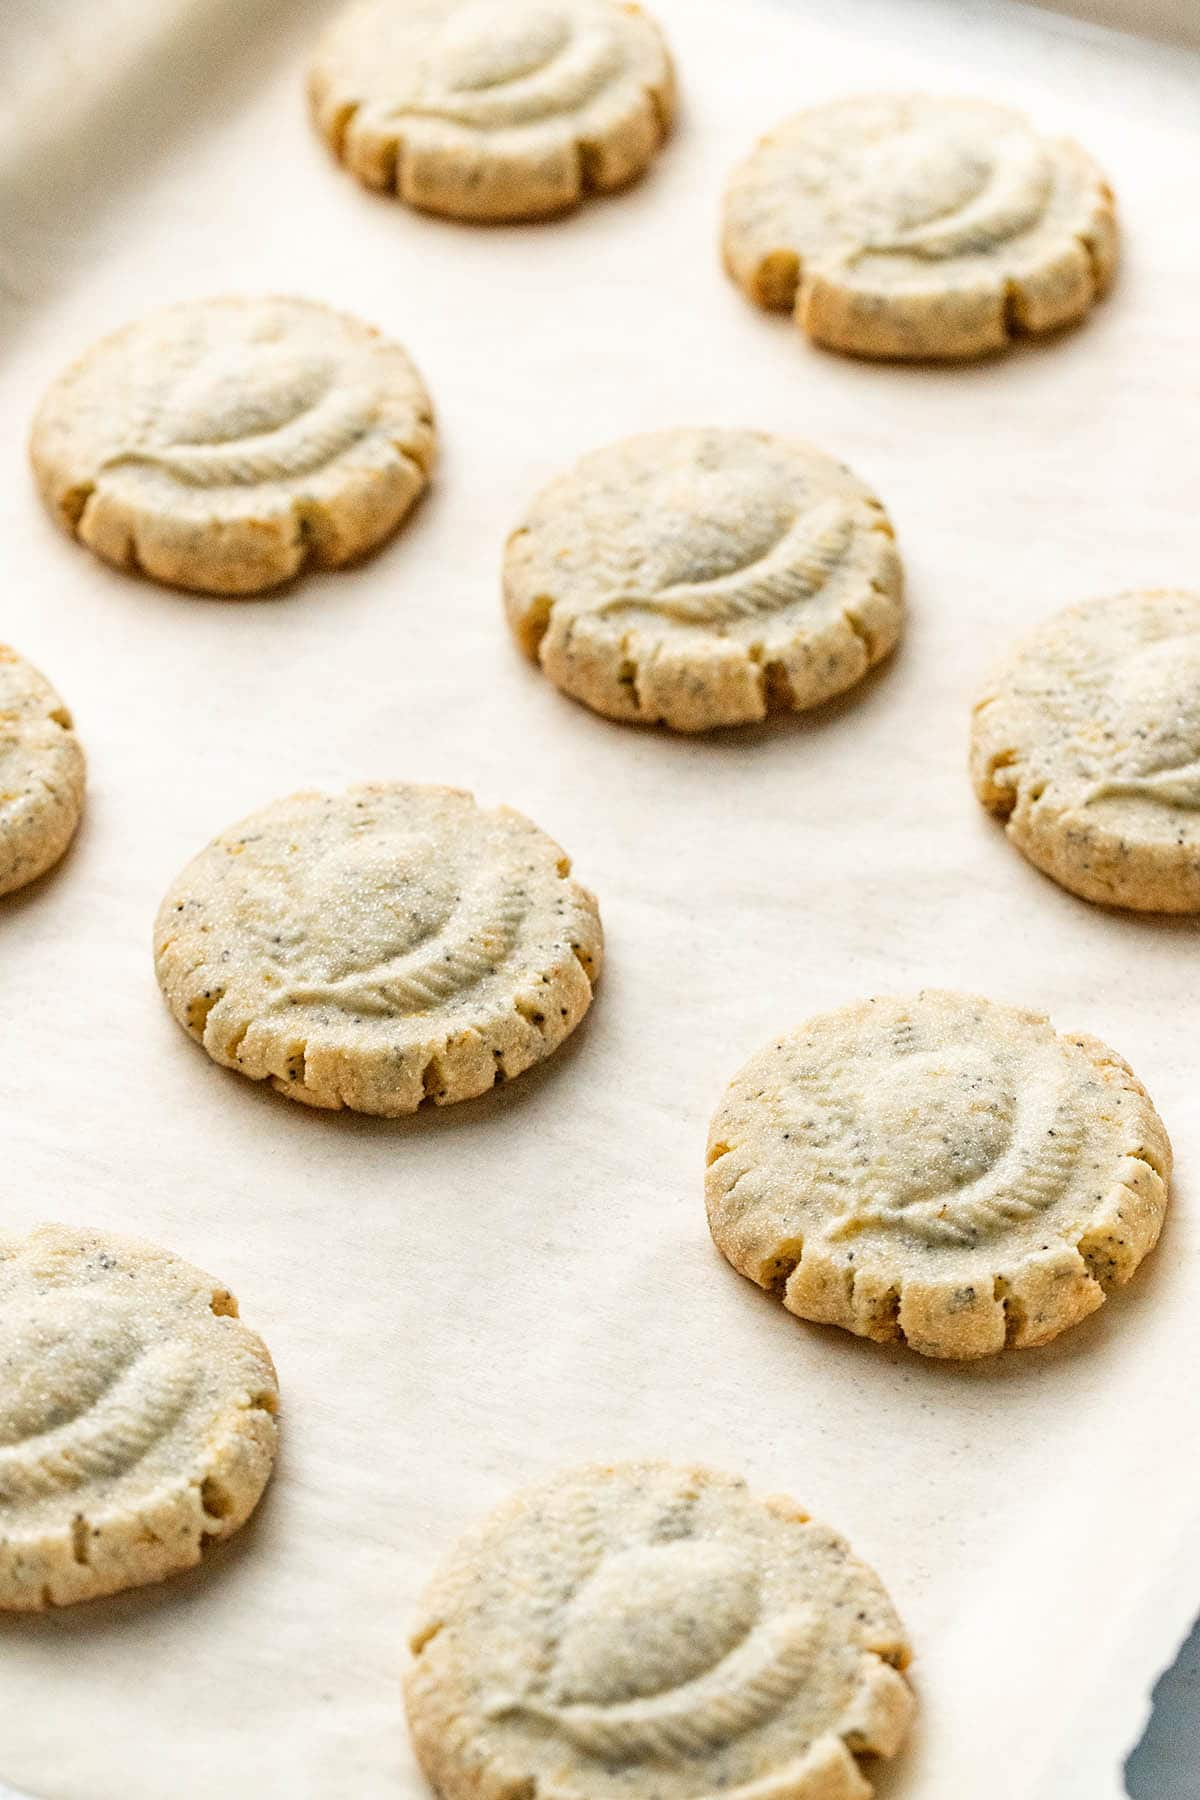 Angled shot of a tray of baked lemon poppy seed shortbread cookies.